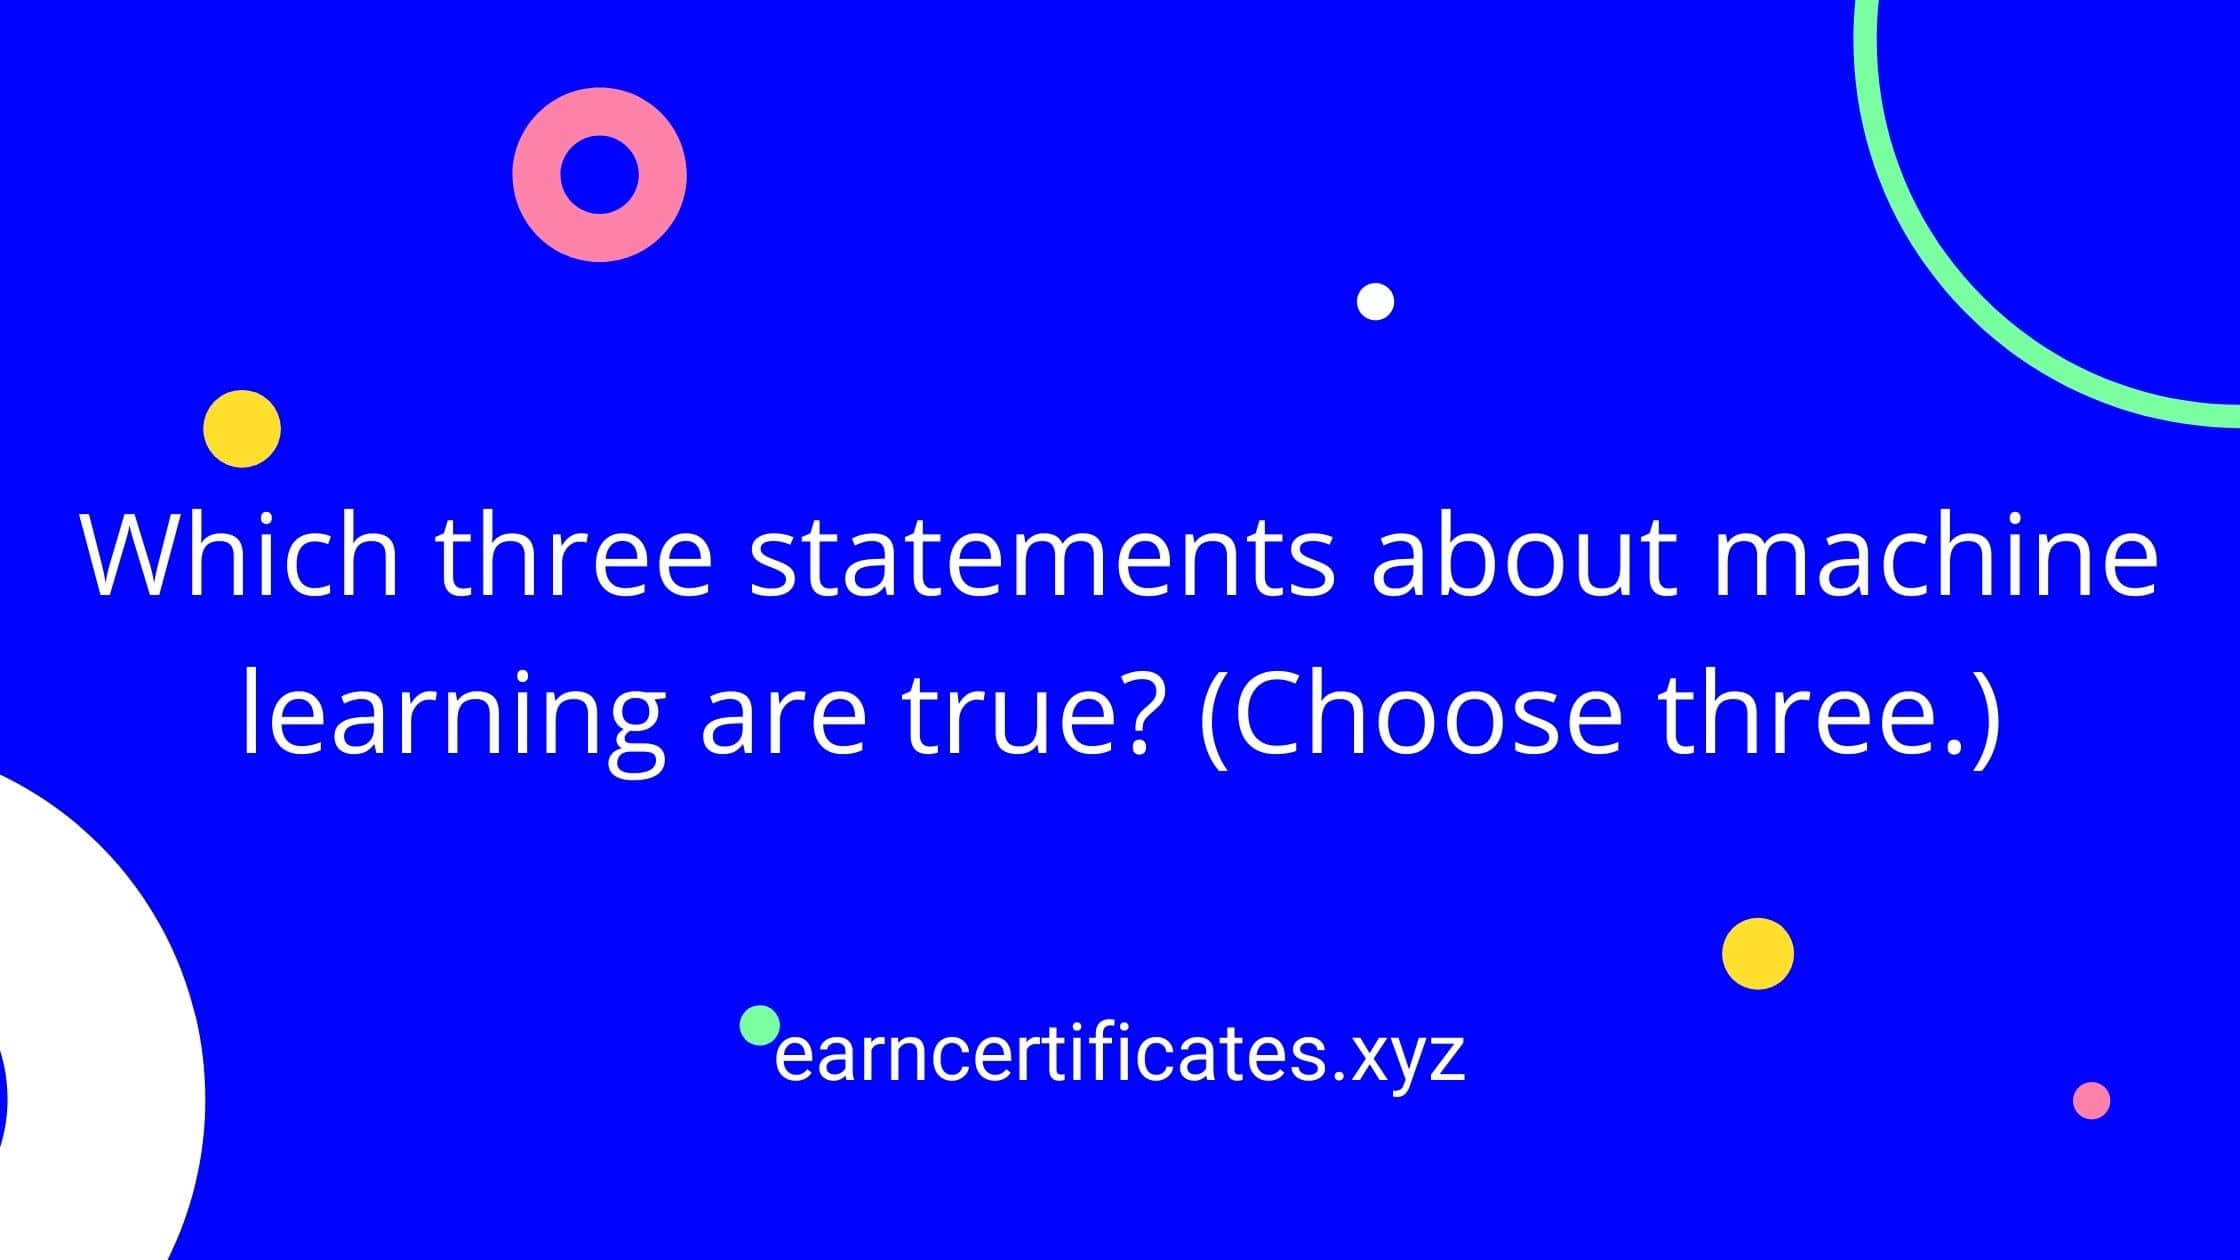 Which three statements about machine learning are true? (Choose three.)